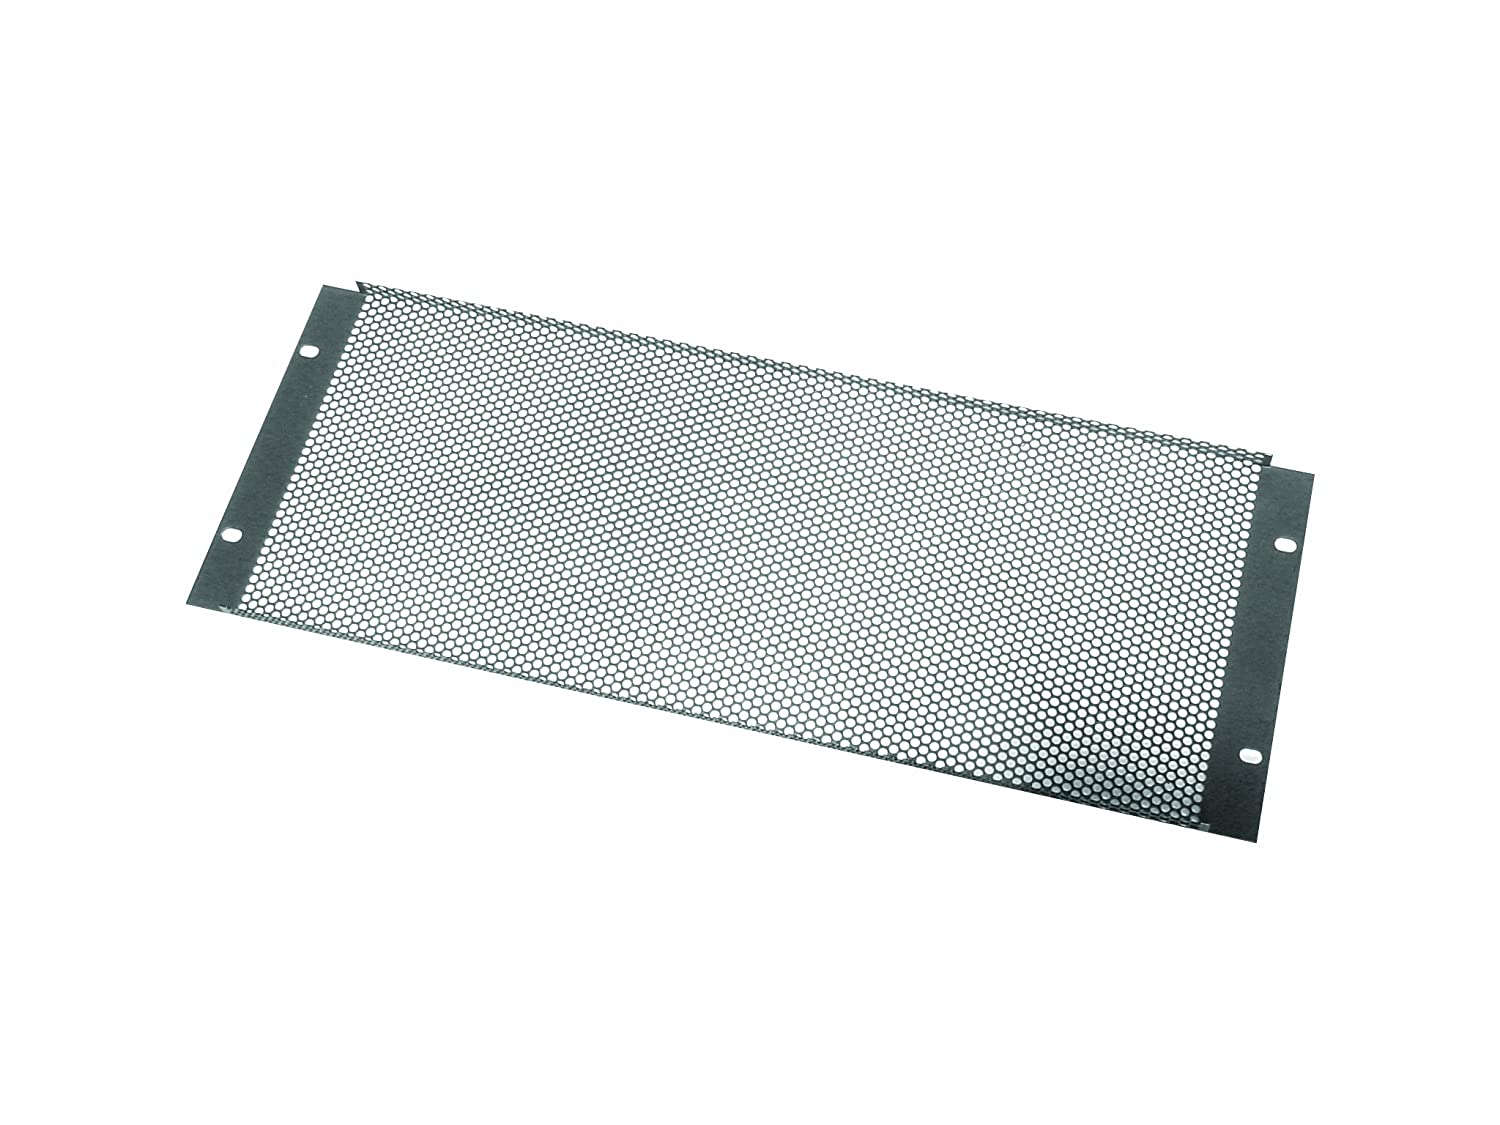 Odyssey ARPVLP4 4 Space Fine Perforated Panel Rack Accessory Odyssey Innovative Designs